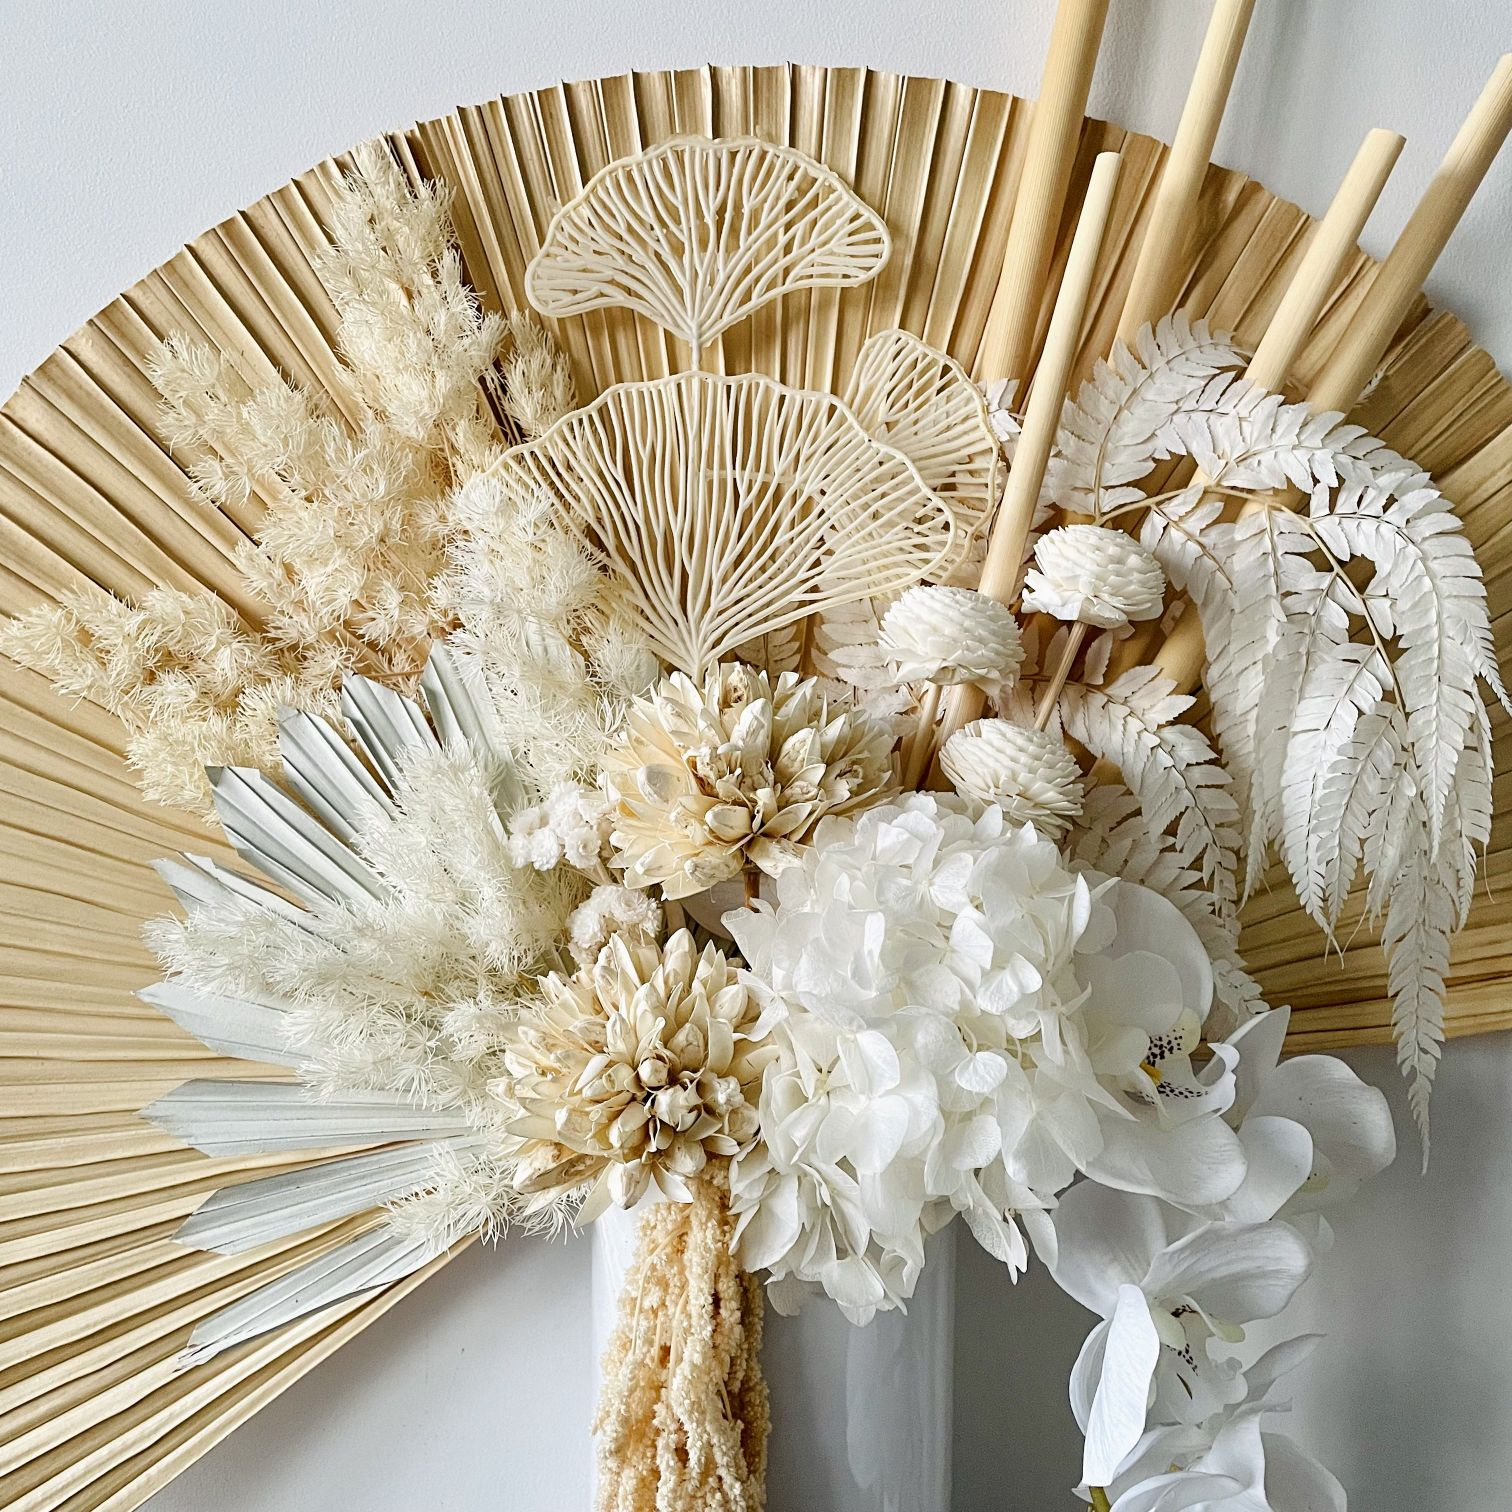 The ultimate secret to decorating your home with Dried flowers